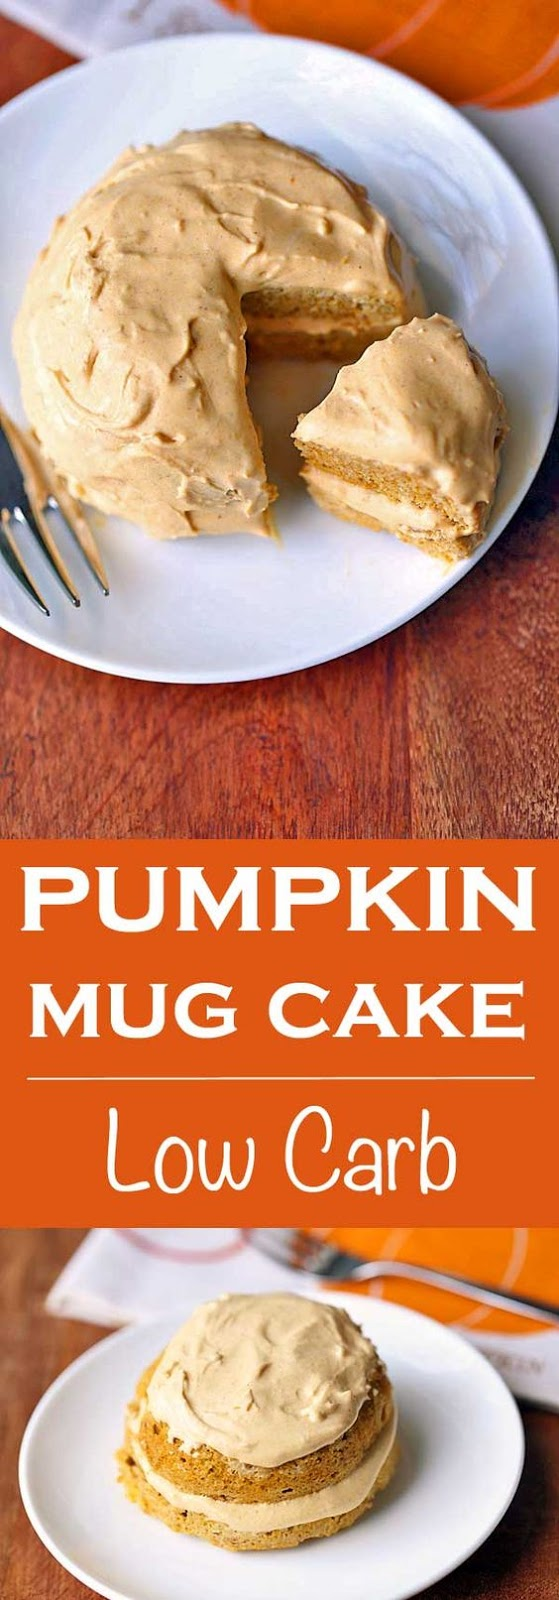 Pumpkin Mug Cake Low Carb